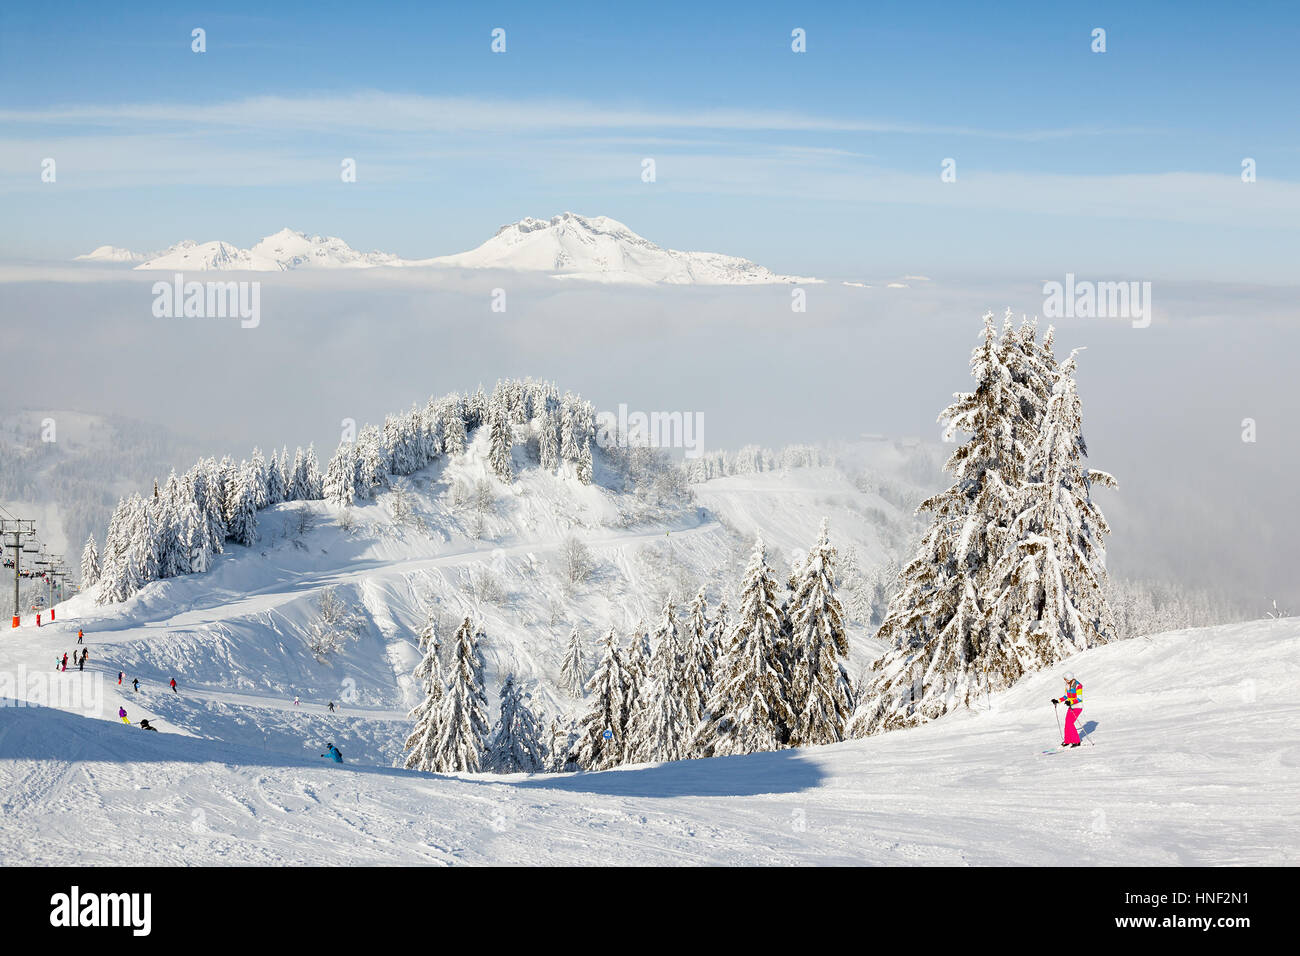 MORZINE, FRANCE - FEBRUARY 06, 2015: Skiers and snow boarders on Le Ranfoilly mountain peak in Les Gets ski resort - Stock Image